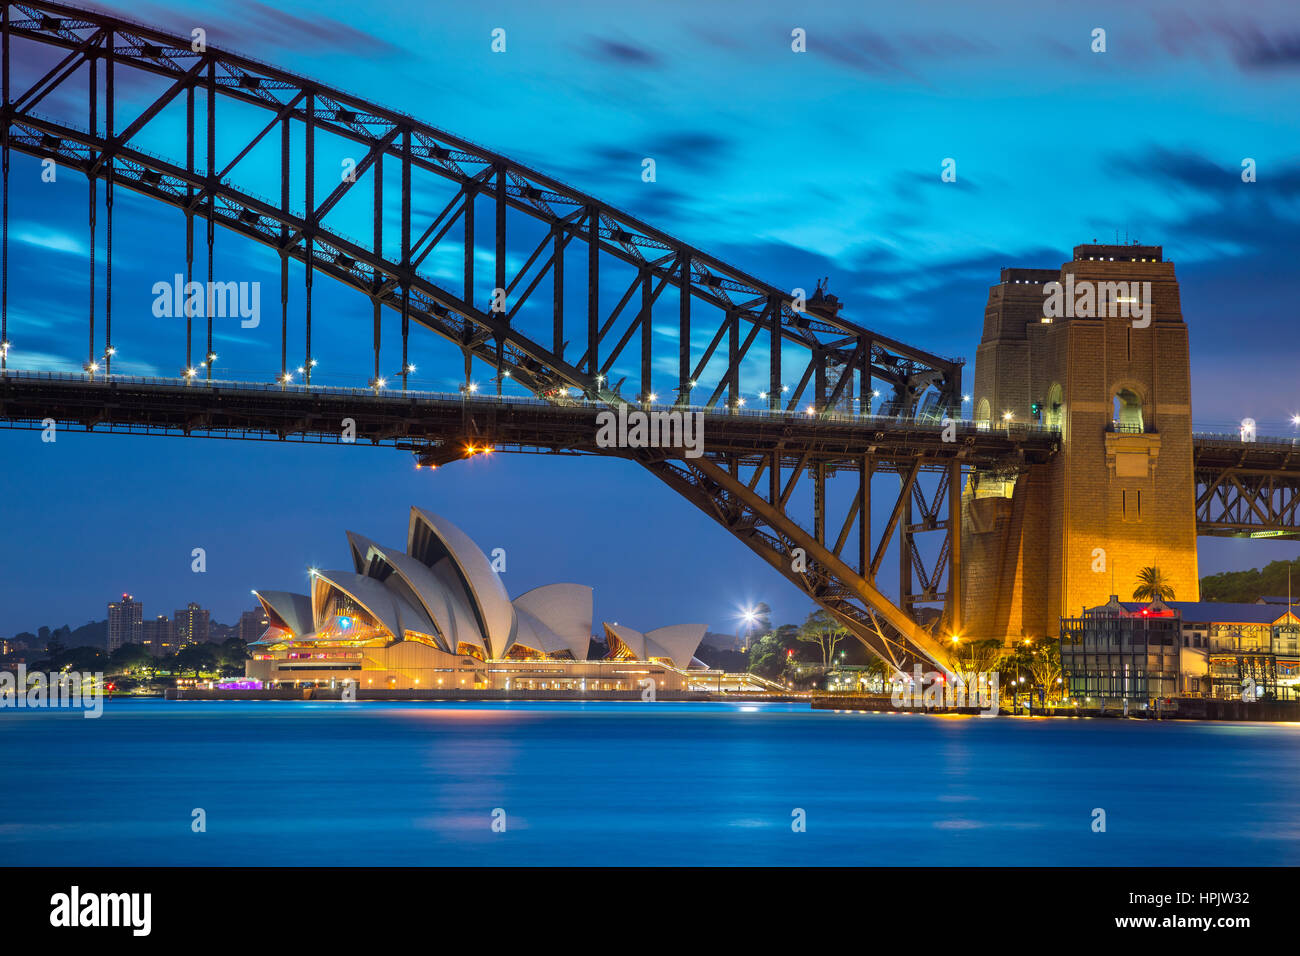 Sydney. Cityscape image of Sydney Opera House, Australia with Harbour Bridge and Sydney skyline during sunset. - Stock Image